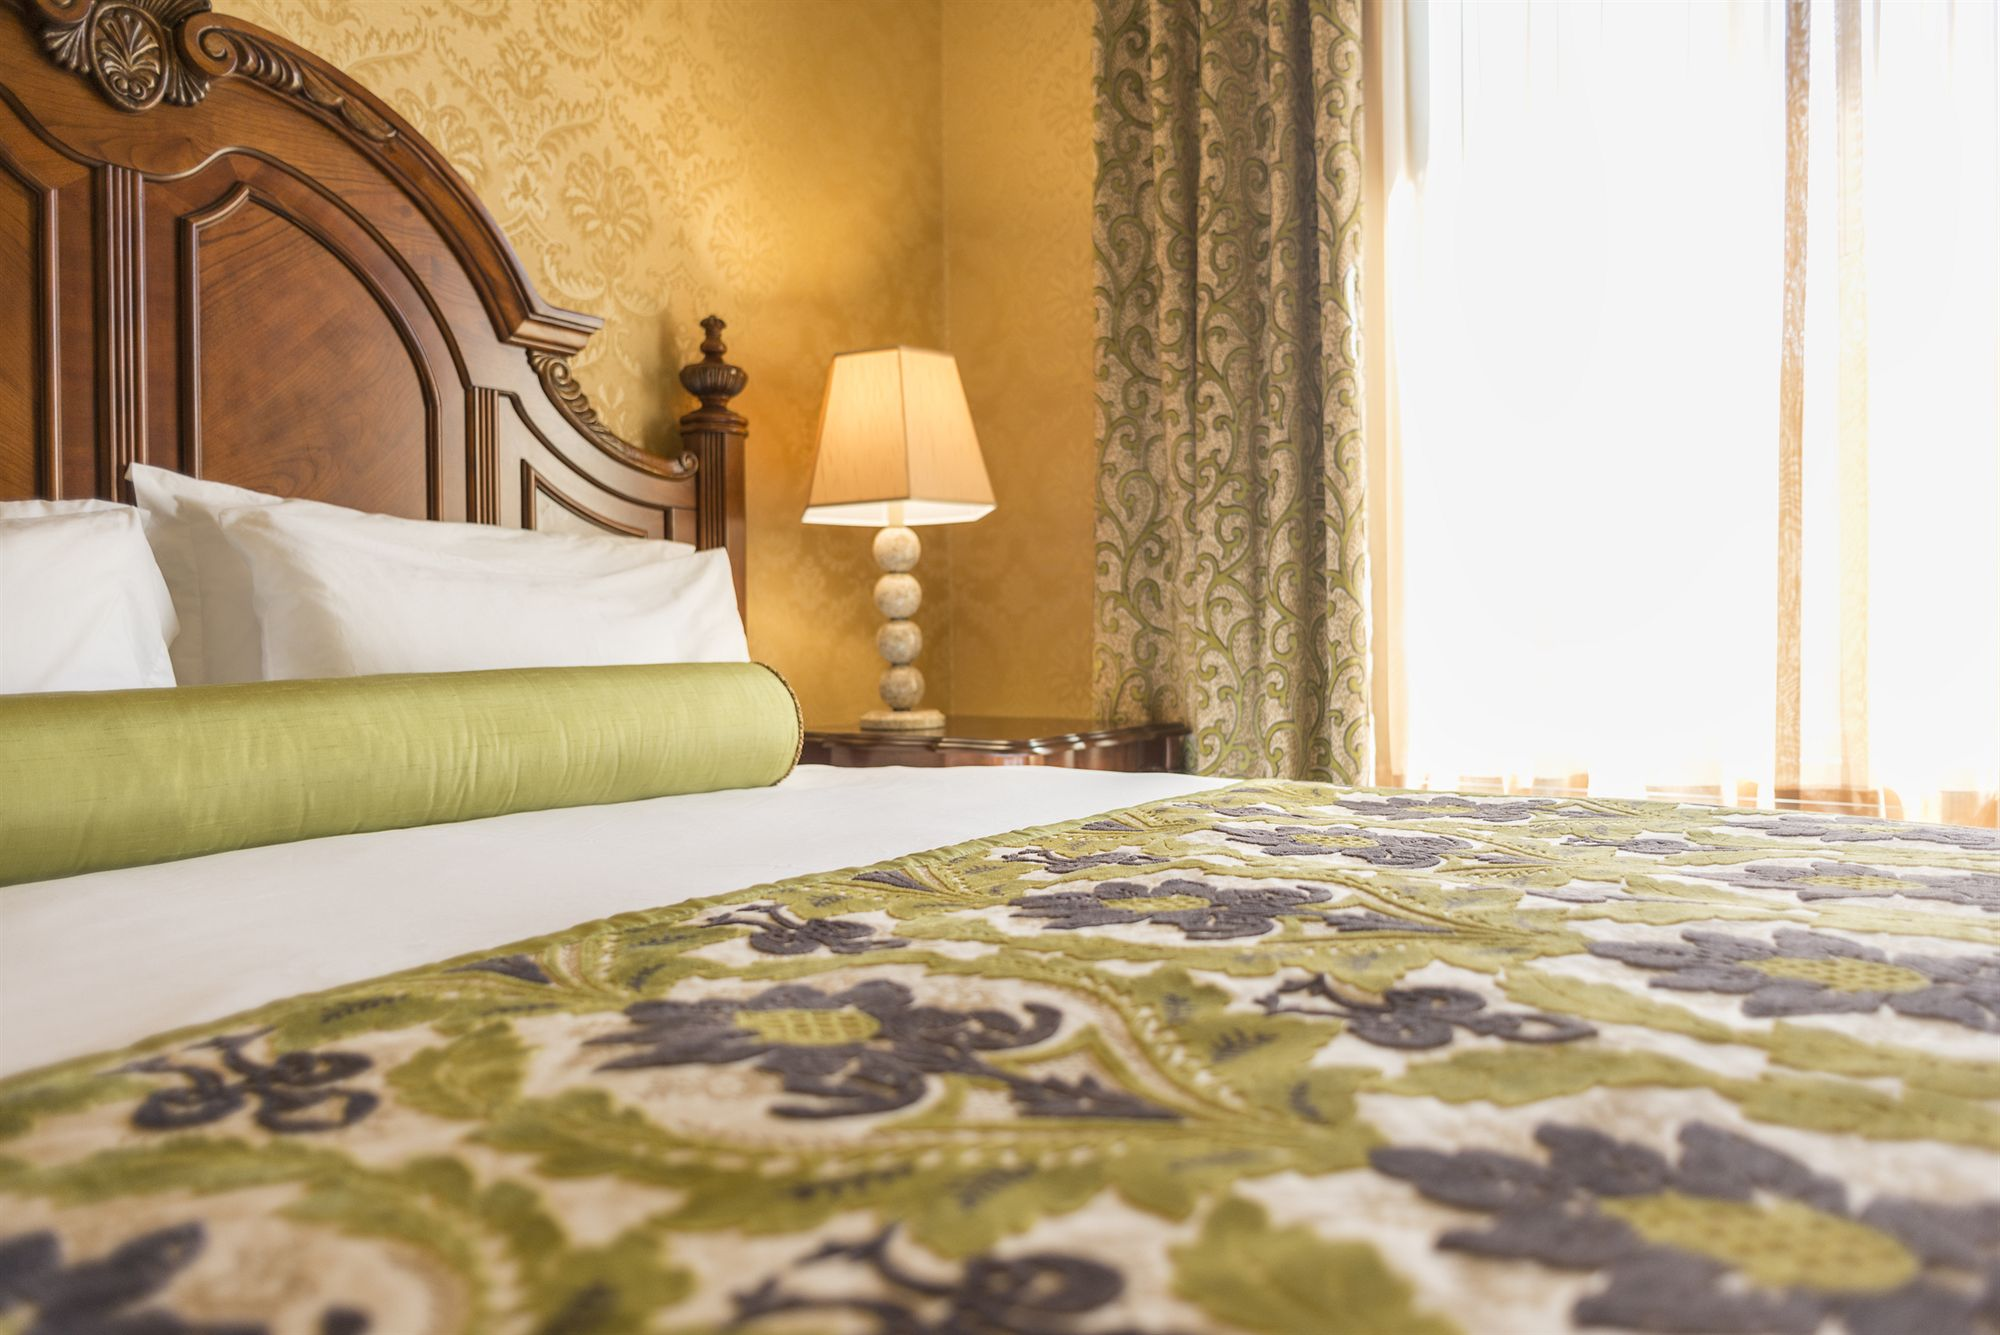 Discount Coupon For Ayres Hotel Manhattan Beach Lax In Los Angeles